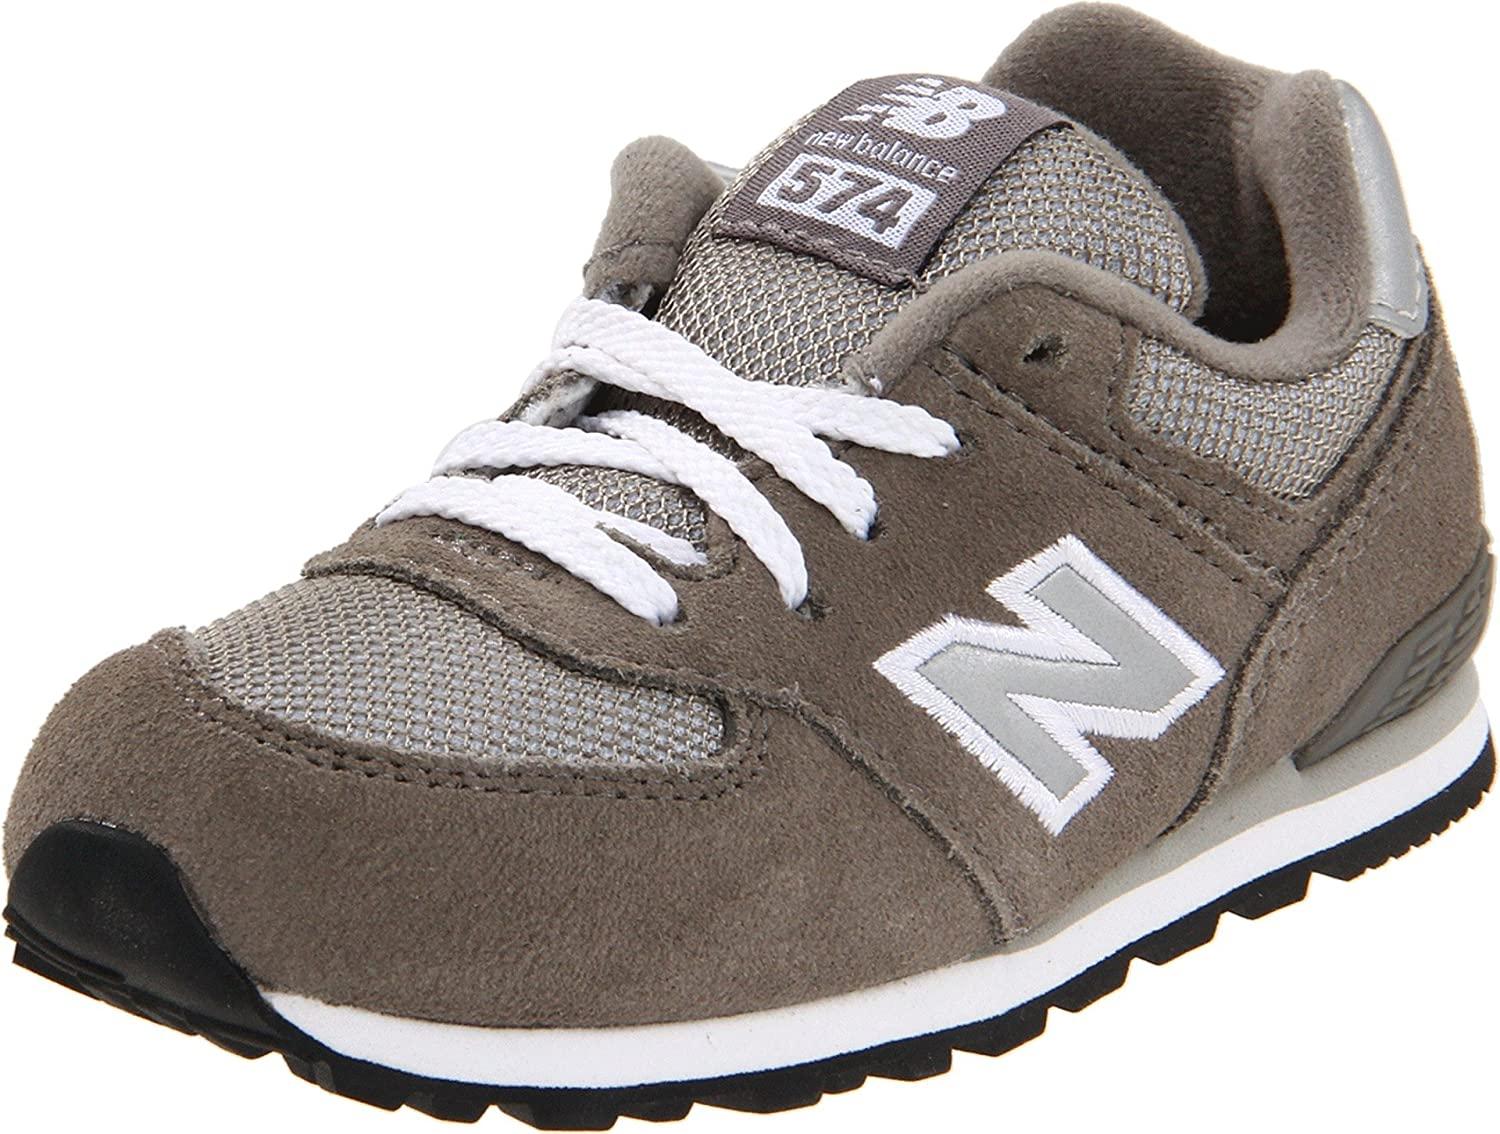 new balance 574 toddler boy